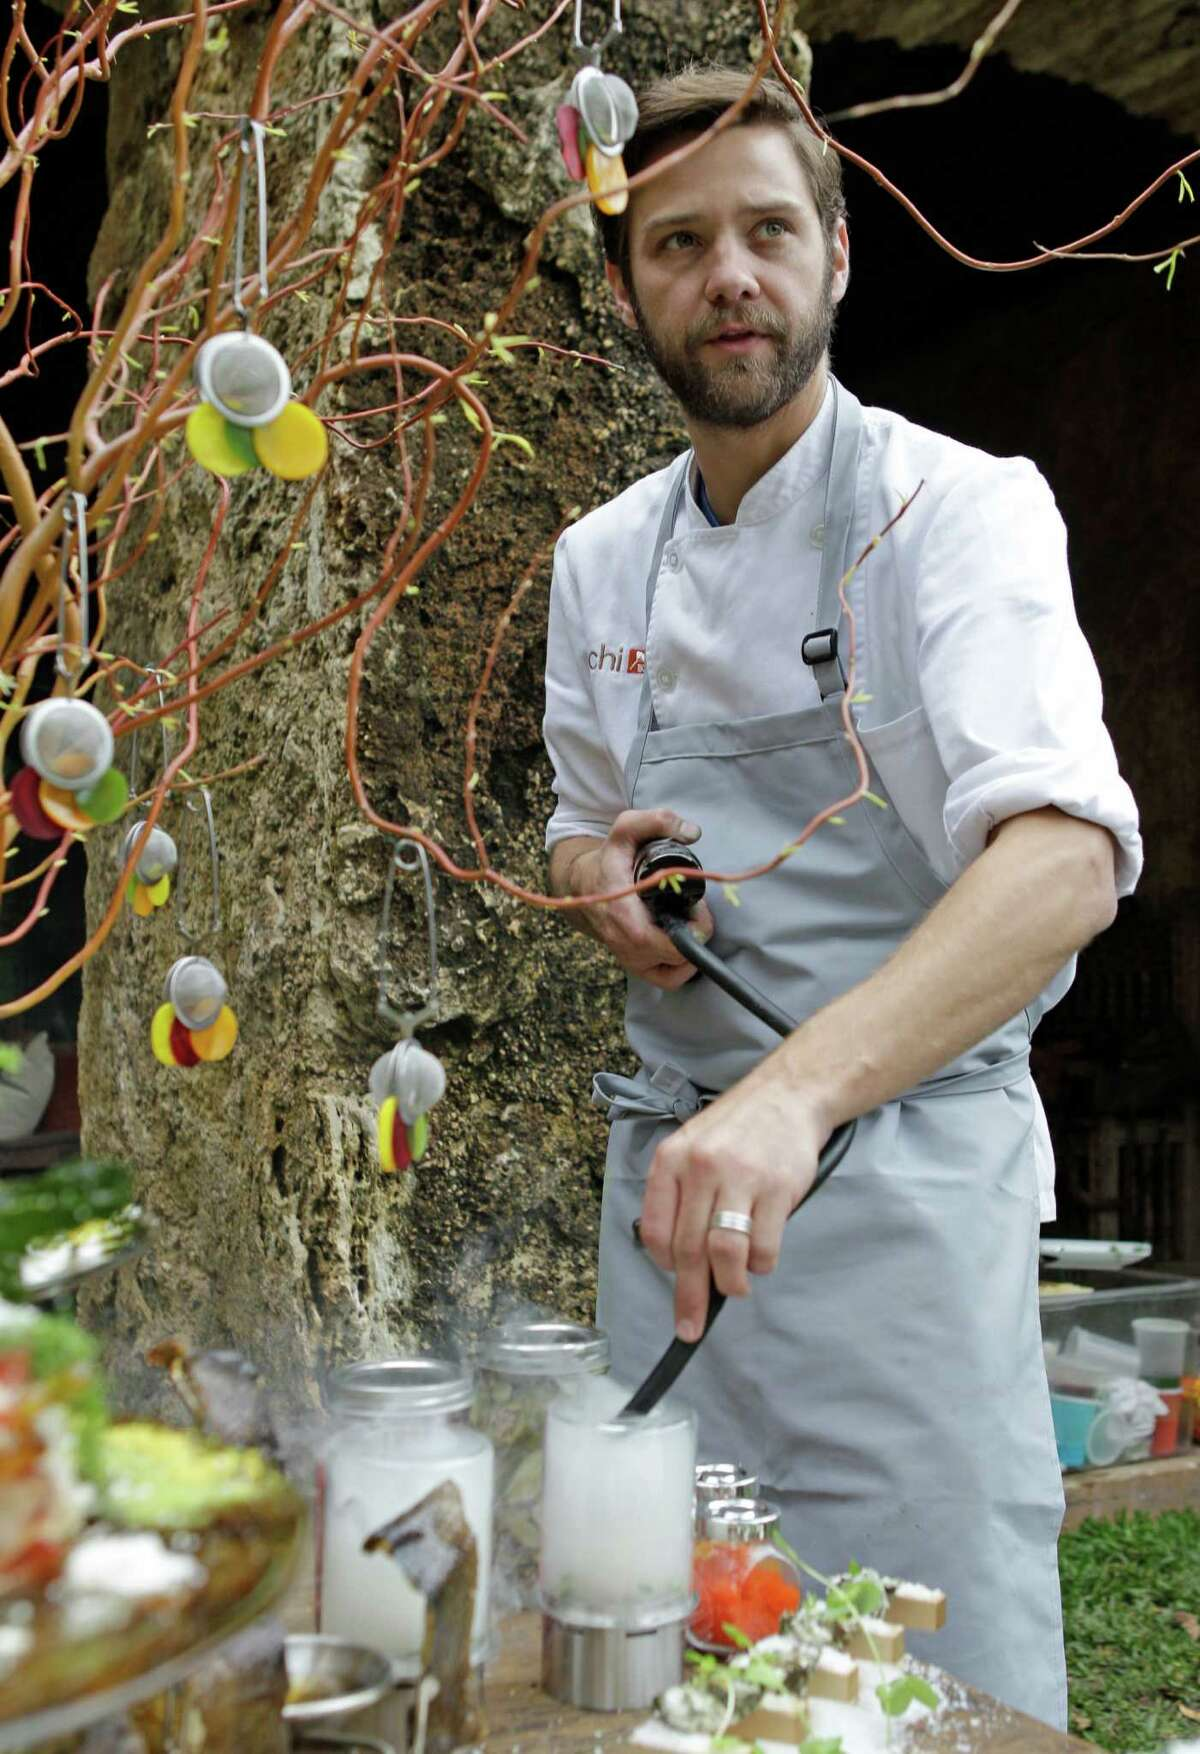 """Uchi chef Kaz Edwards adds rosemary smoke to a dish of egg yolk with salmon eggs and grilled asparagus in preparation for """"Feast: A Dinner Series,"""" inspired by the exhibition """"Feast: Radical Hospitality in Contemporary Art"""" at Blaffer Art Museum."""